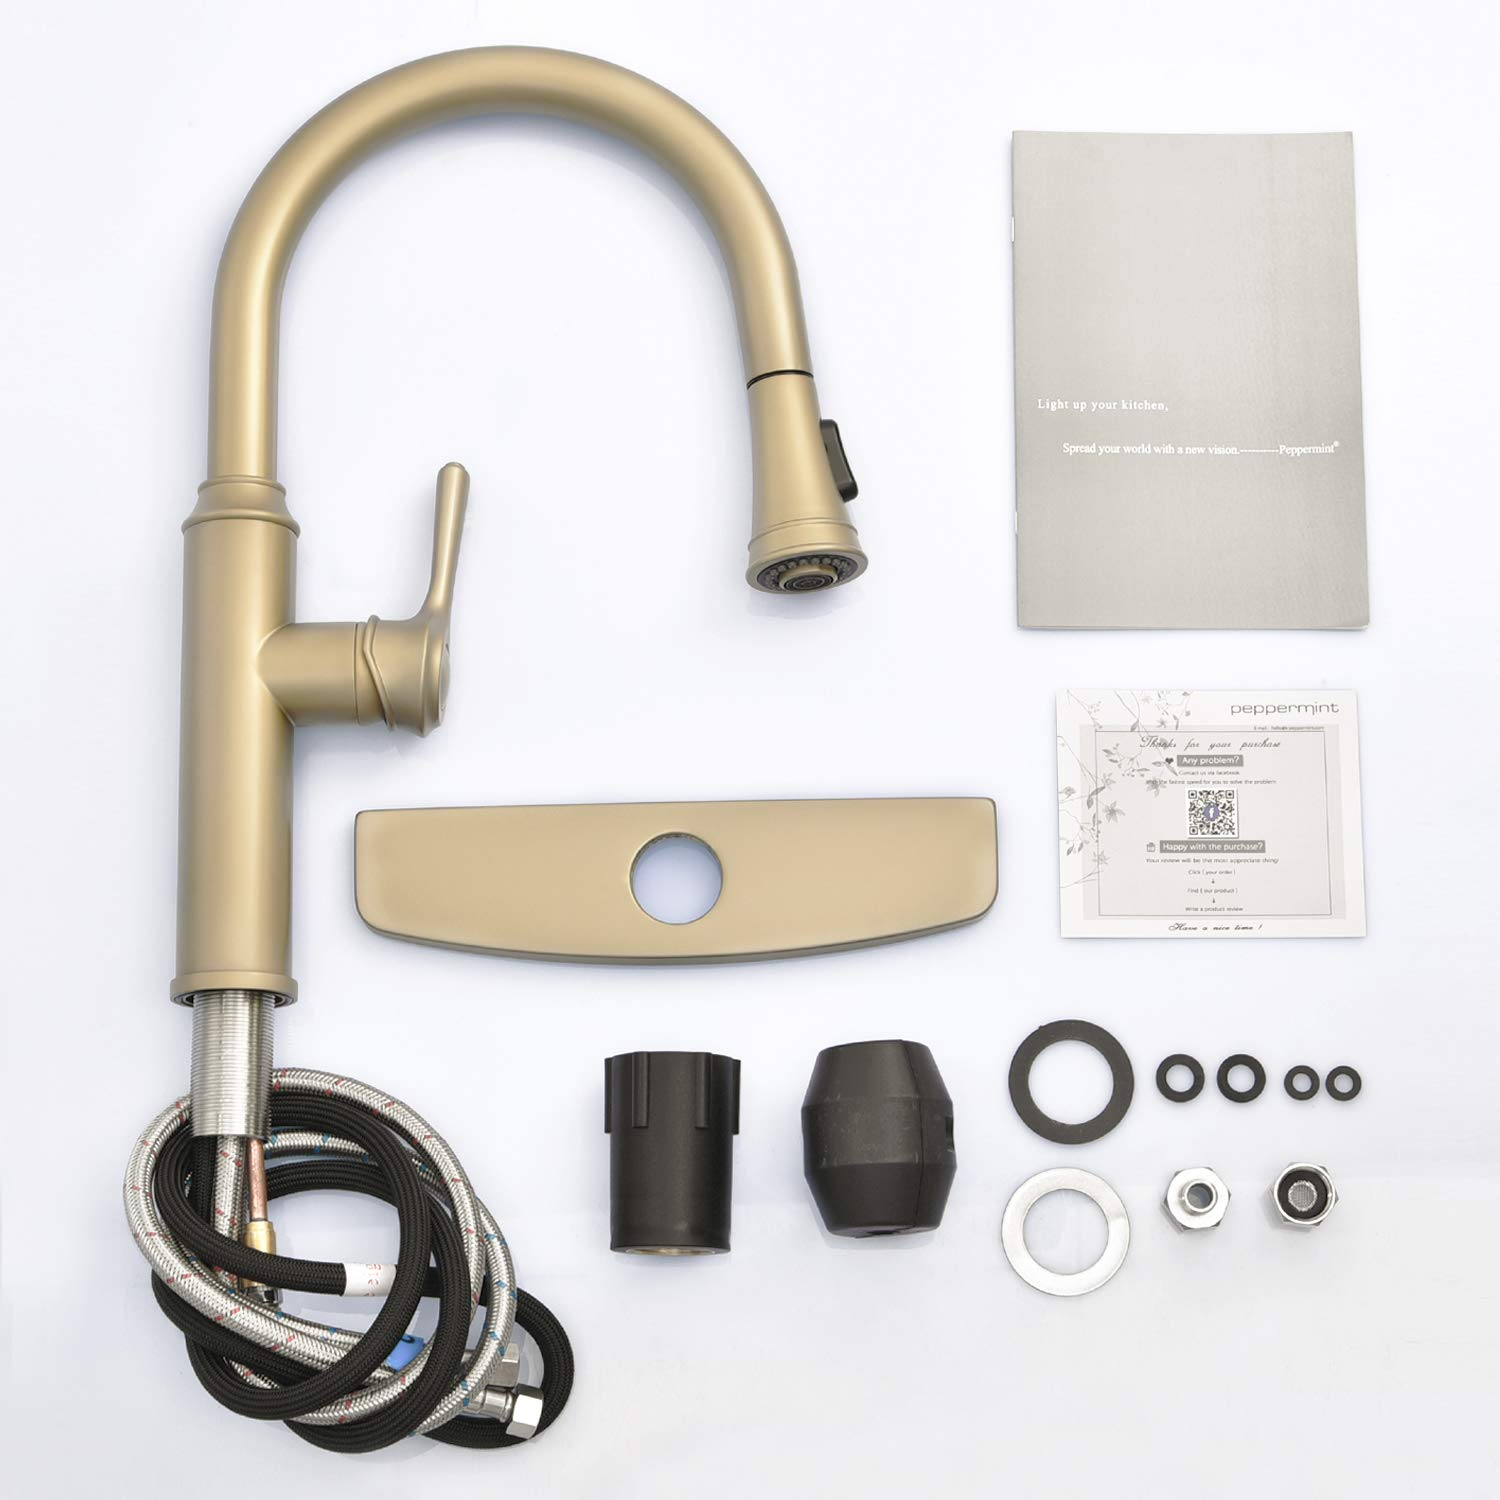 Peppermint Kitchen Sink Faucet Matte Champagne Bronze Single Handle with Pull Down Sprayer Matte Gold by Peppermint (Image #7)